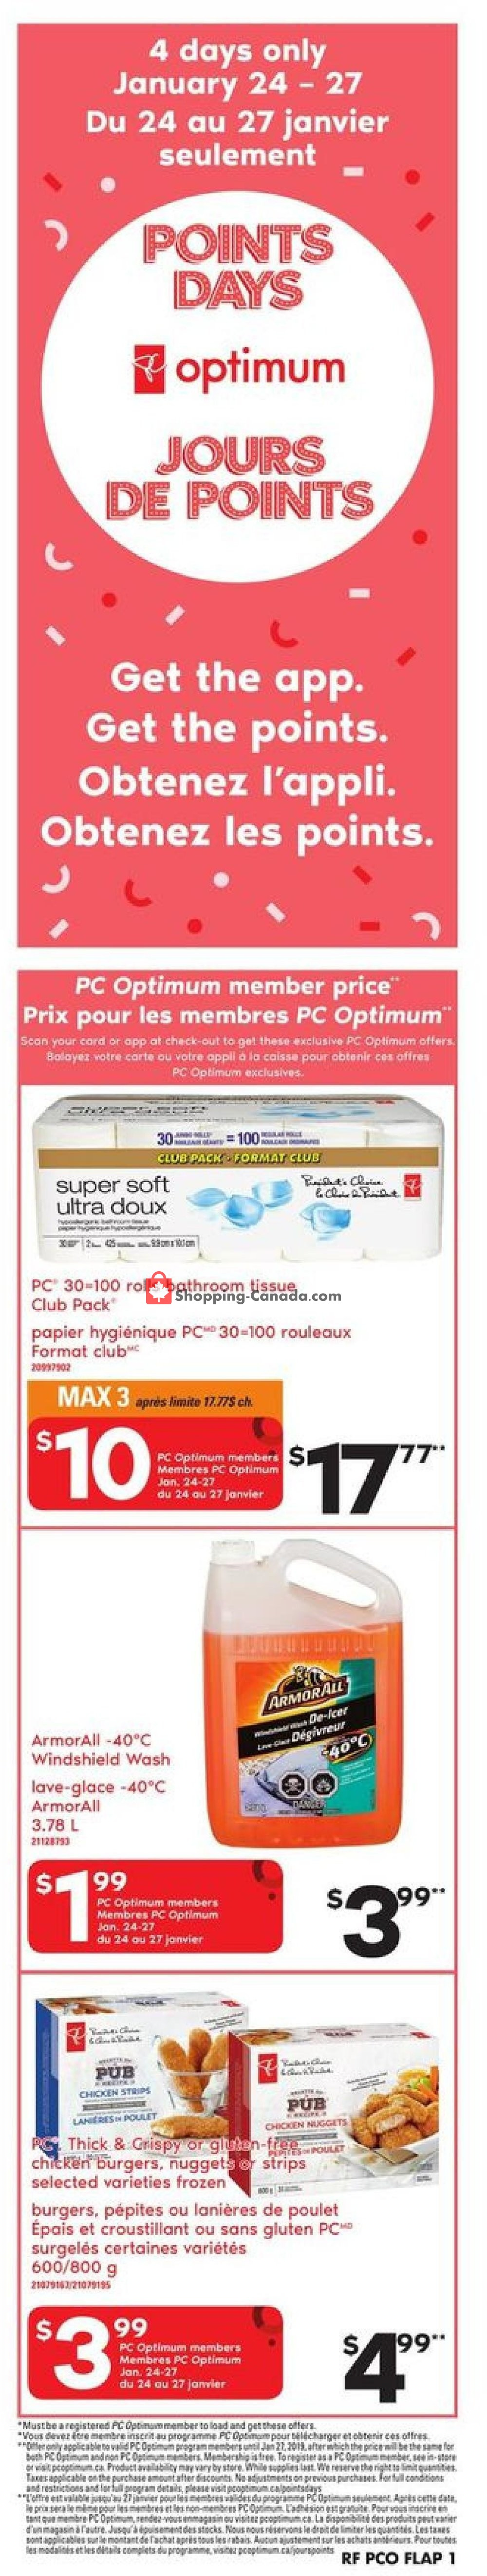 Flyer Atlantic Superstore Canada - from Thursday January 24, 2019 to Wednesday January 30, 2019